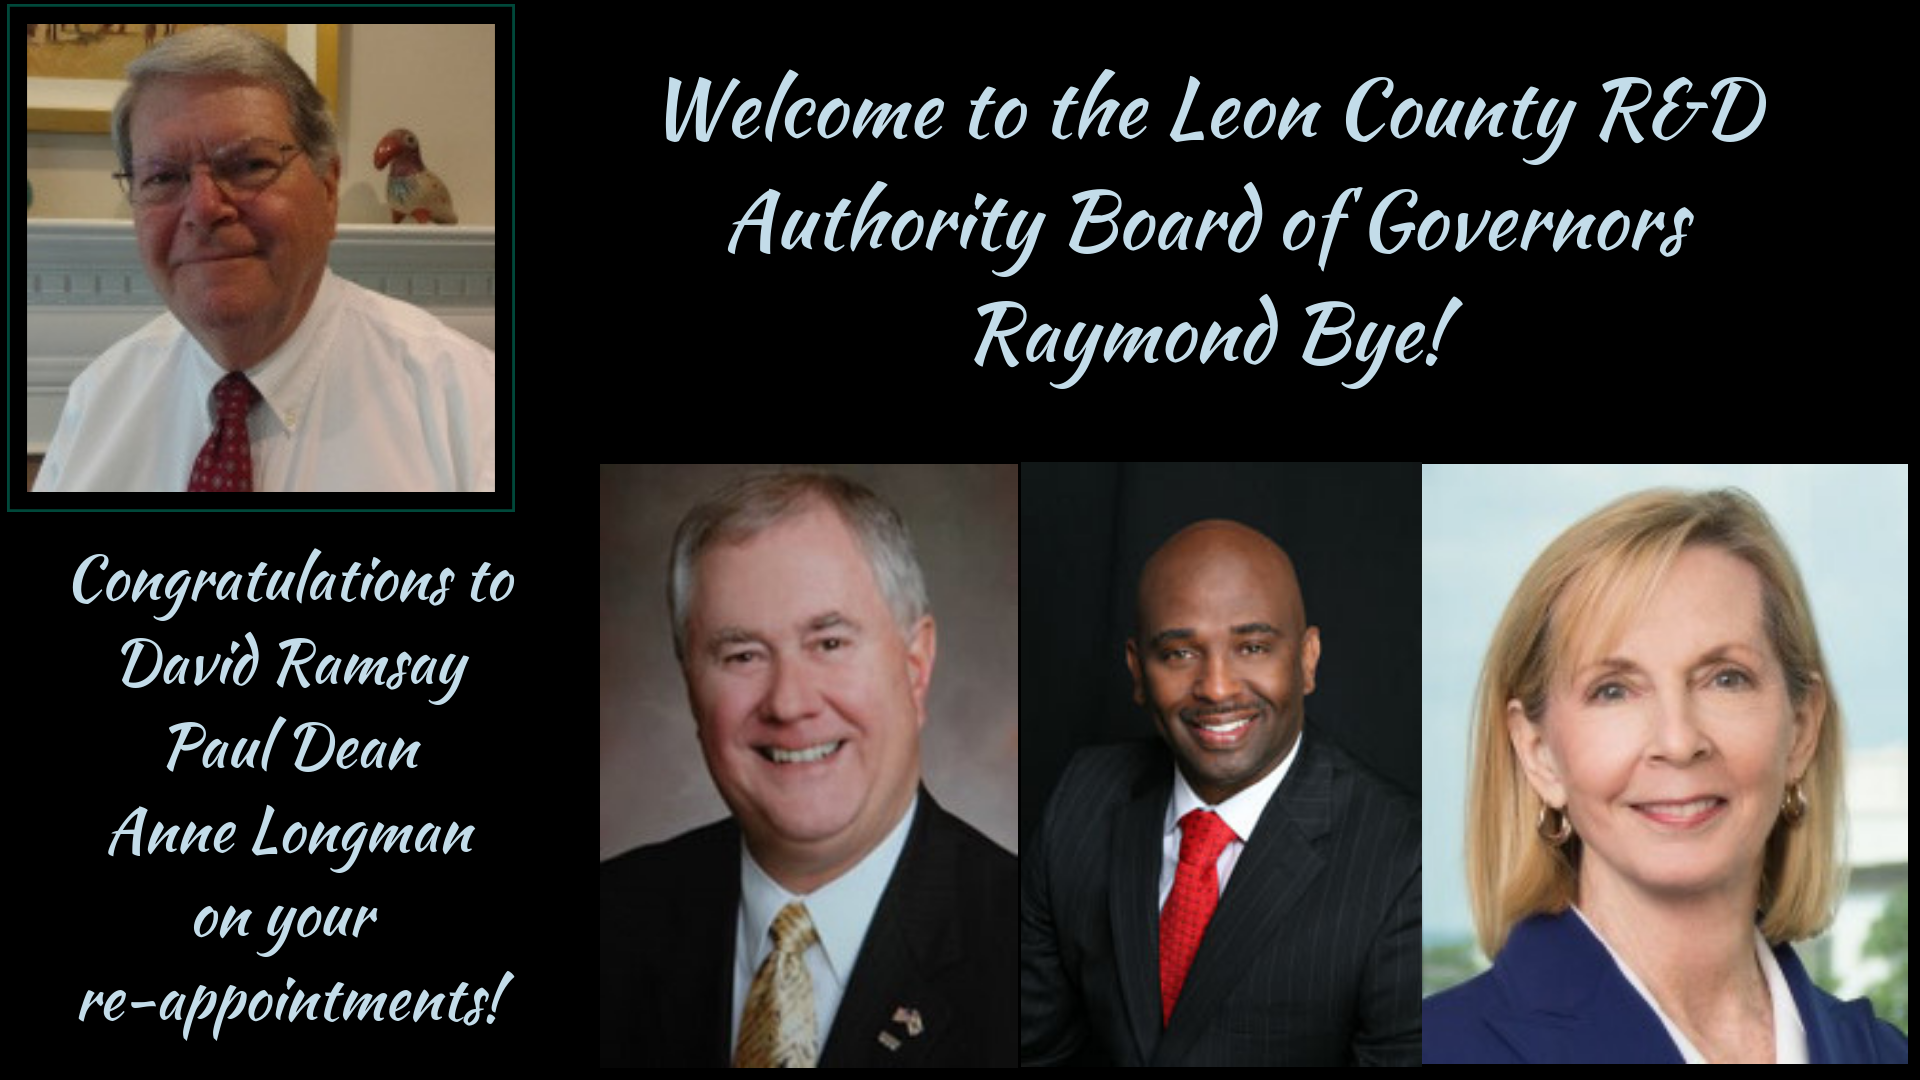 2018 Leon County R&D Authority Board of Governors